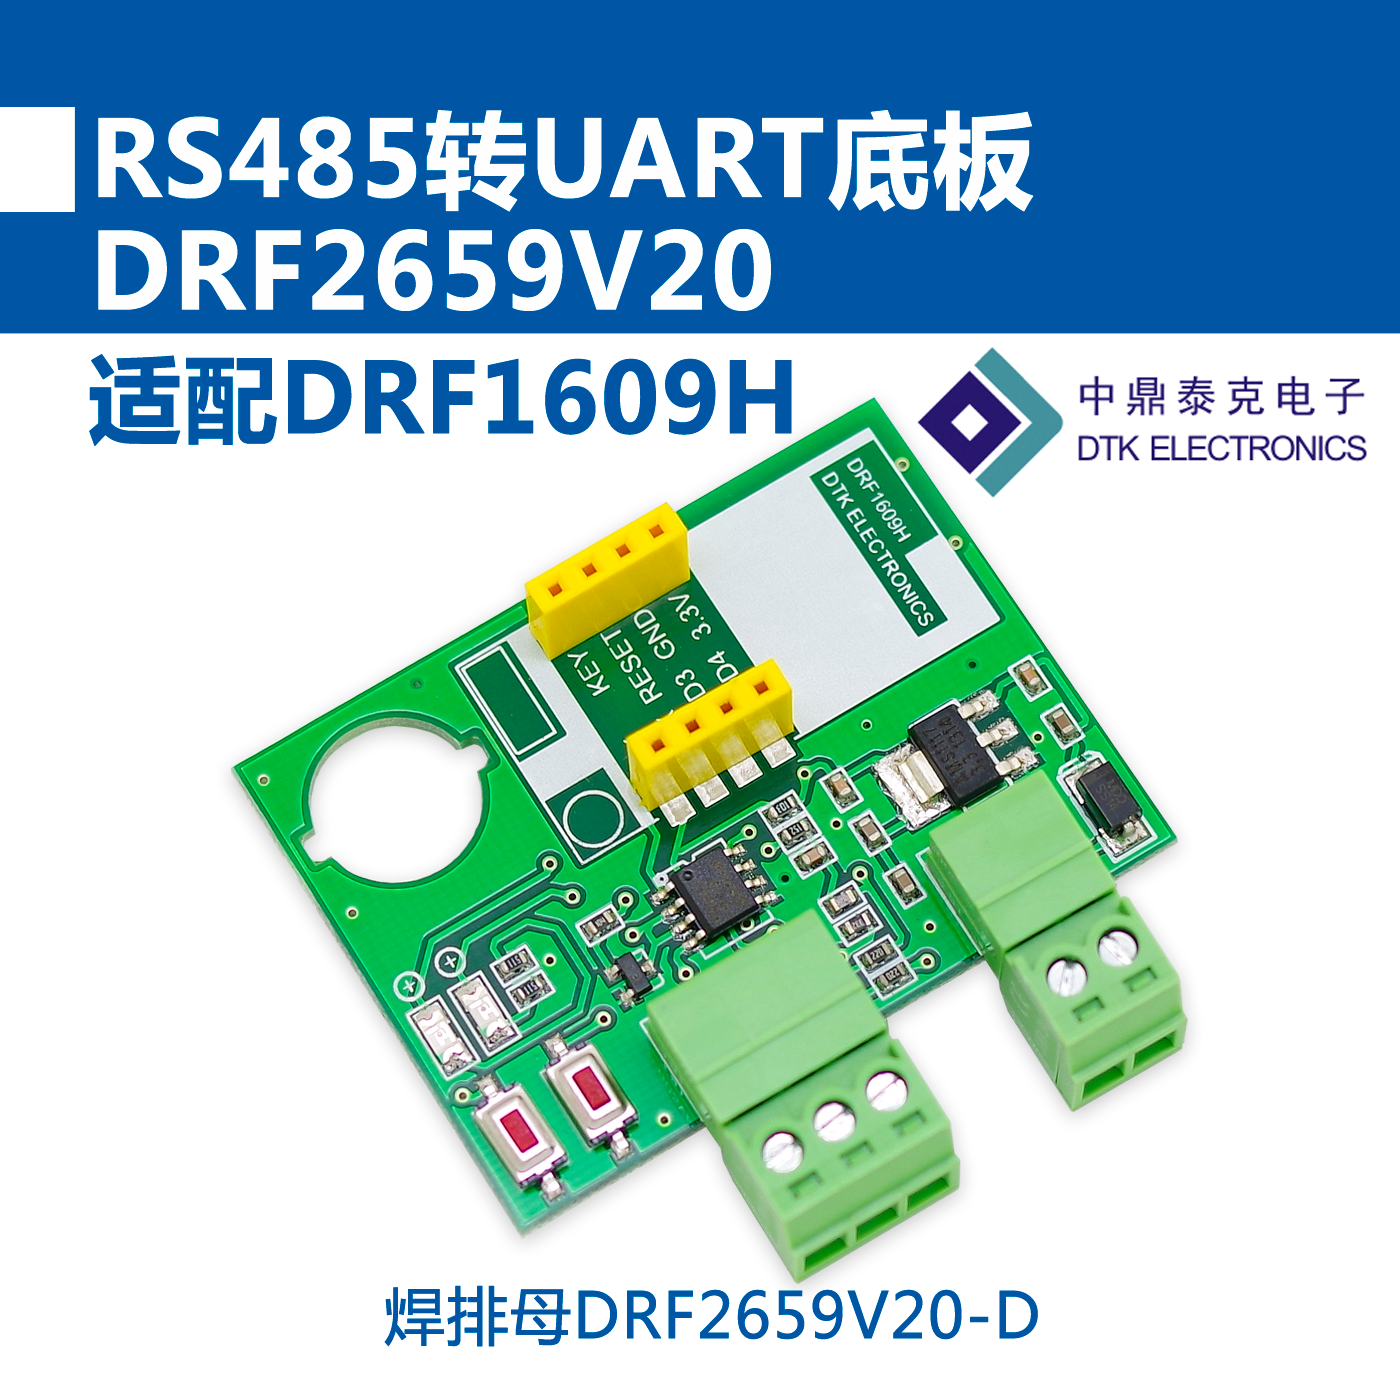 RS485 to UART Backplane, RS485 Adapter Board, Apply to DRF1609H Module novatec dh41sb mtb mountain bike front hub 2 bearing disc brake 32 36 holes 32h 36h bicycle hubs 20 20mm thru 110mm for dh fr